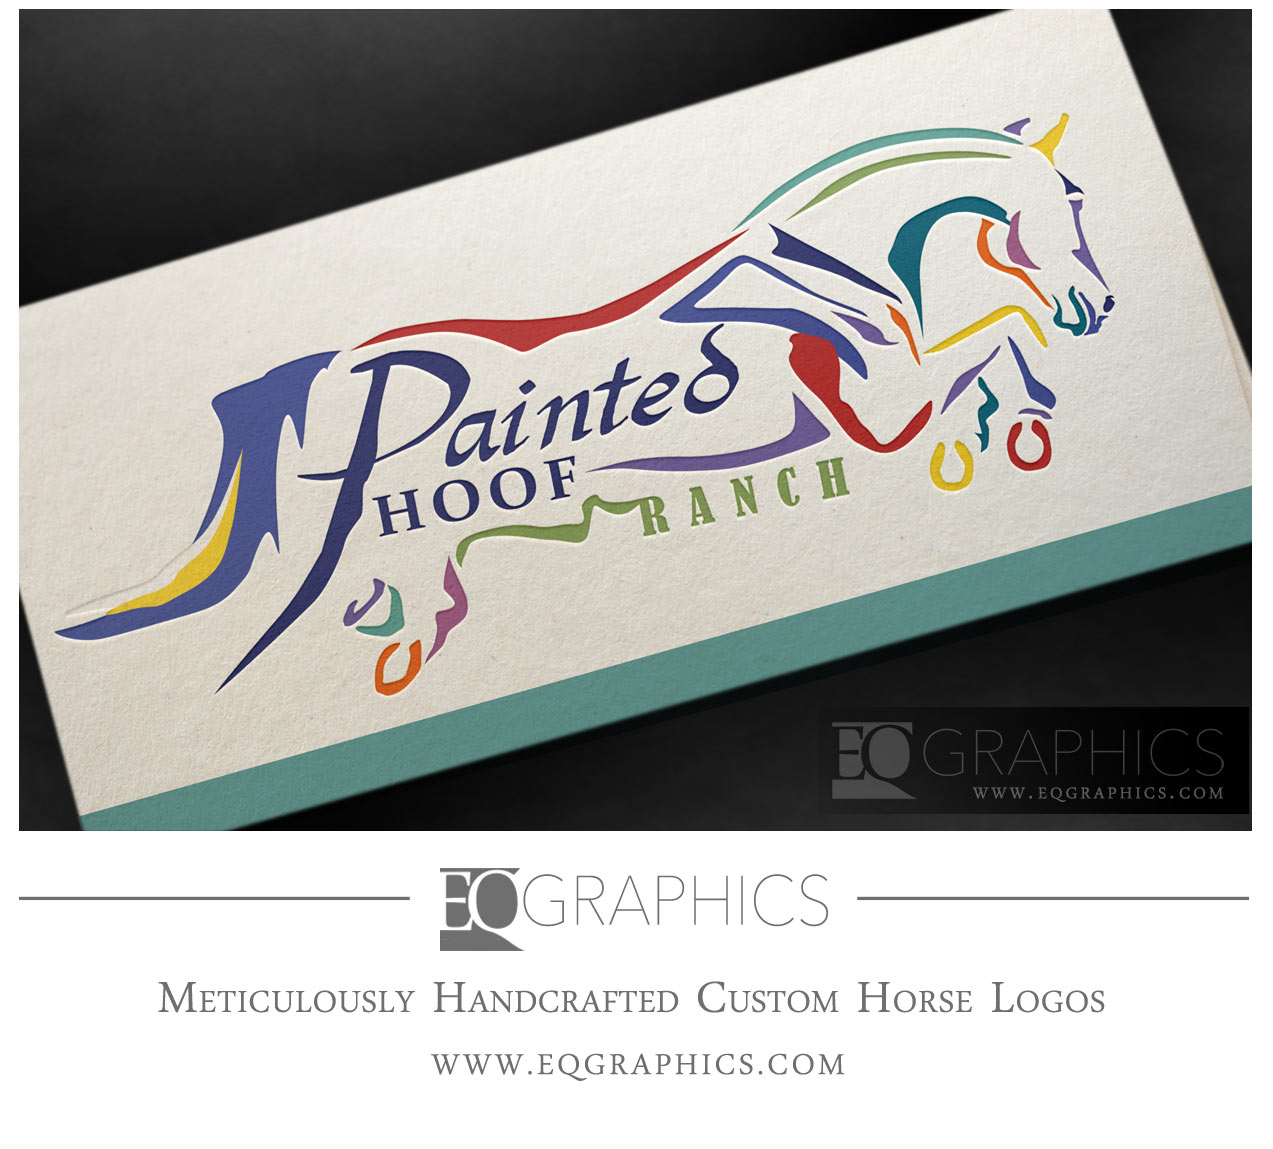 Painted Hoof Ranch Jumper Logo by EQ Graphics Jumping Horse Logo Design Inspiration